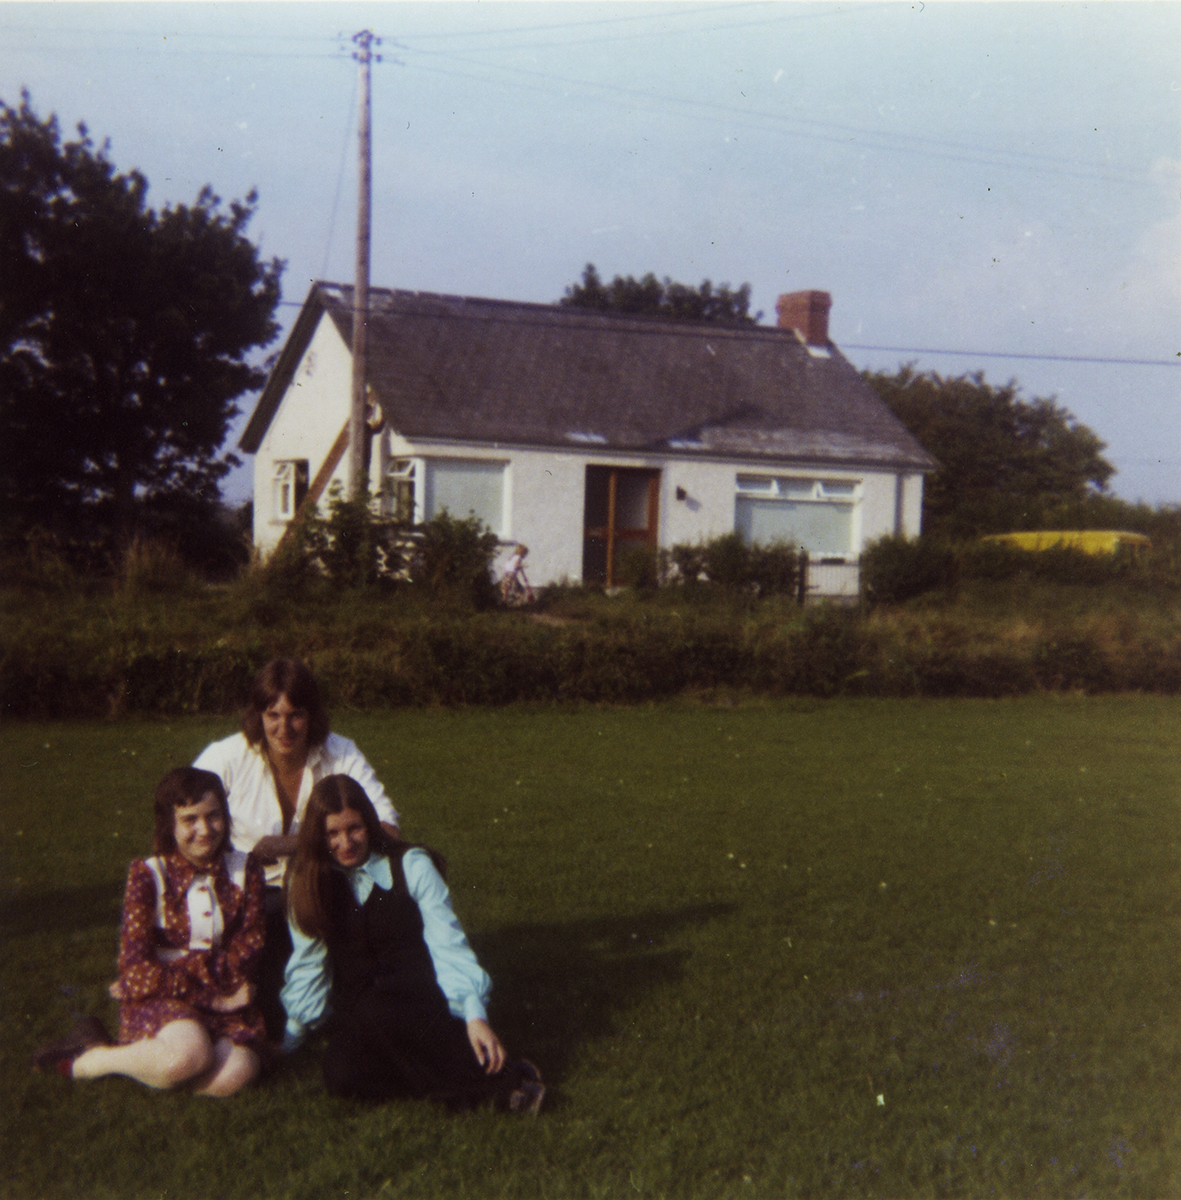 McKeown // County Antrim :: Laurence McKeown, family friend Margaret Harkin and sister Mary in front garden